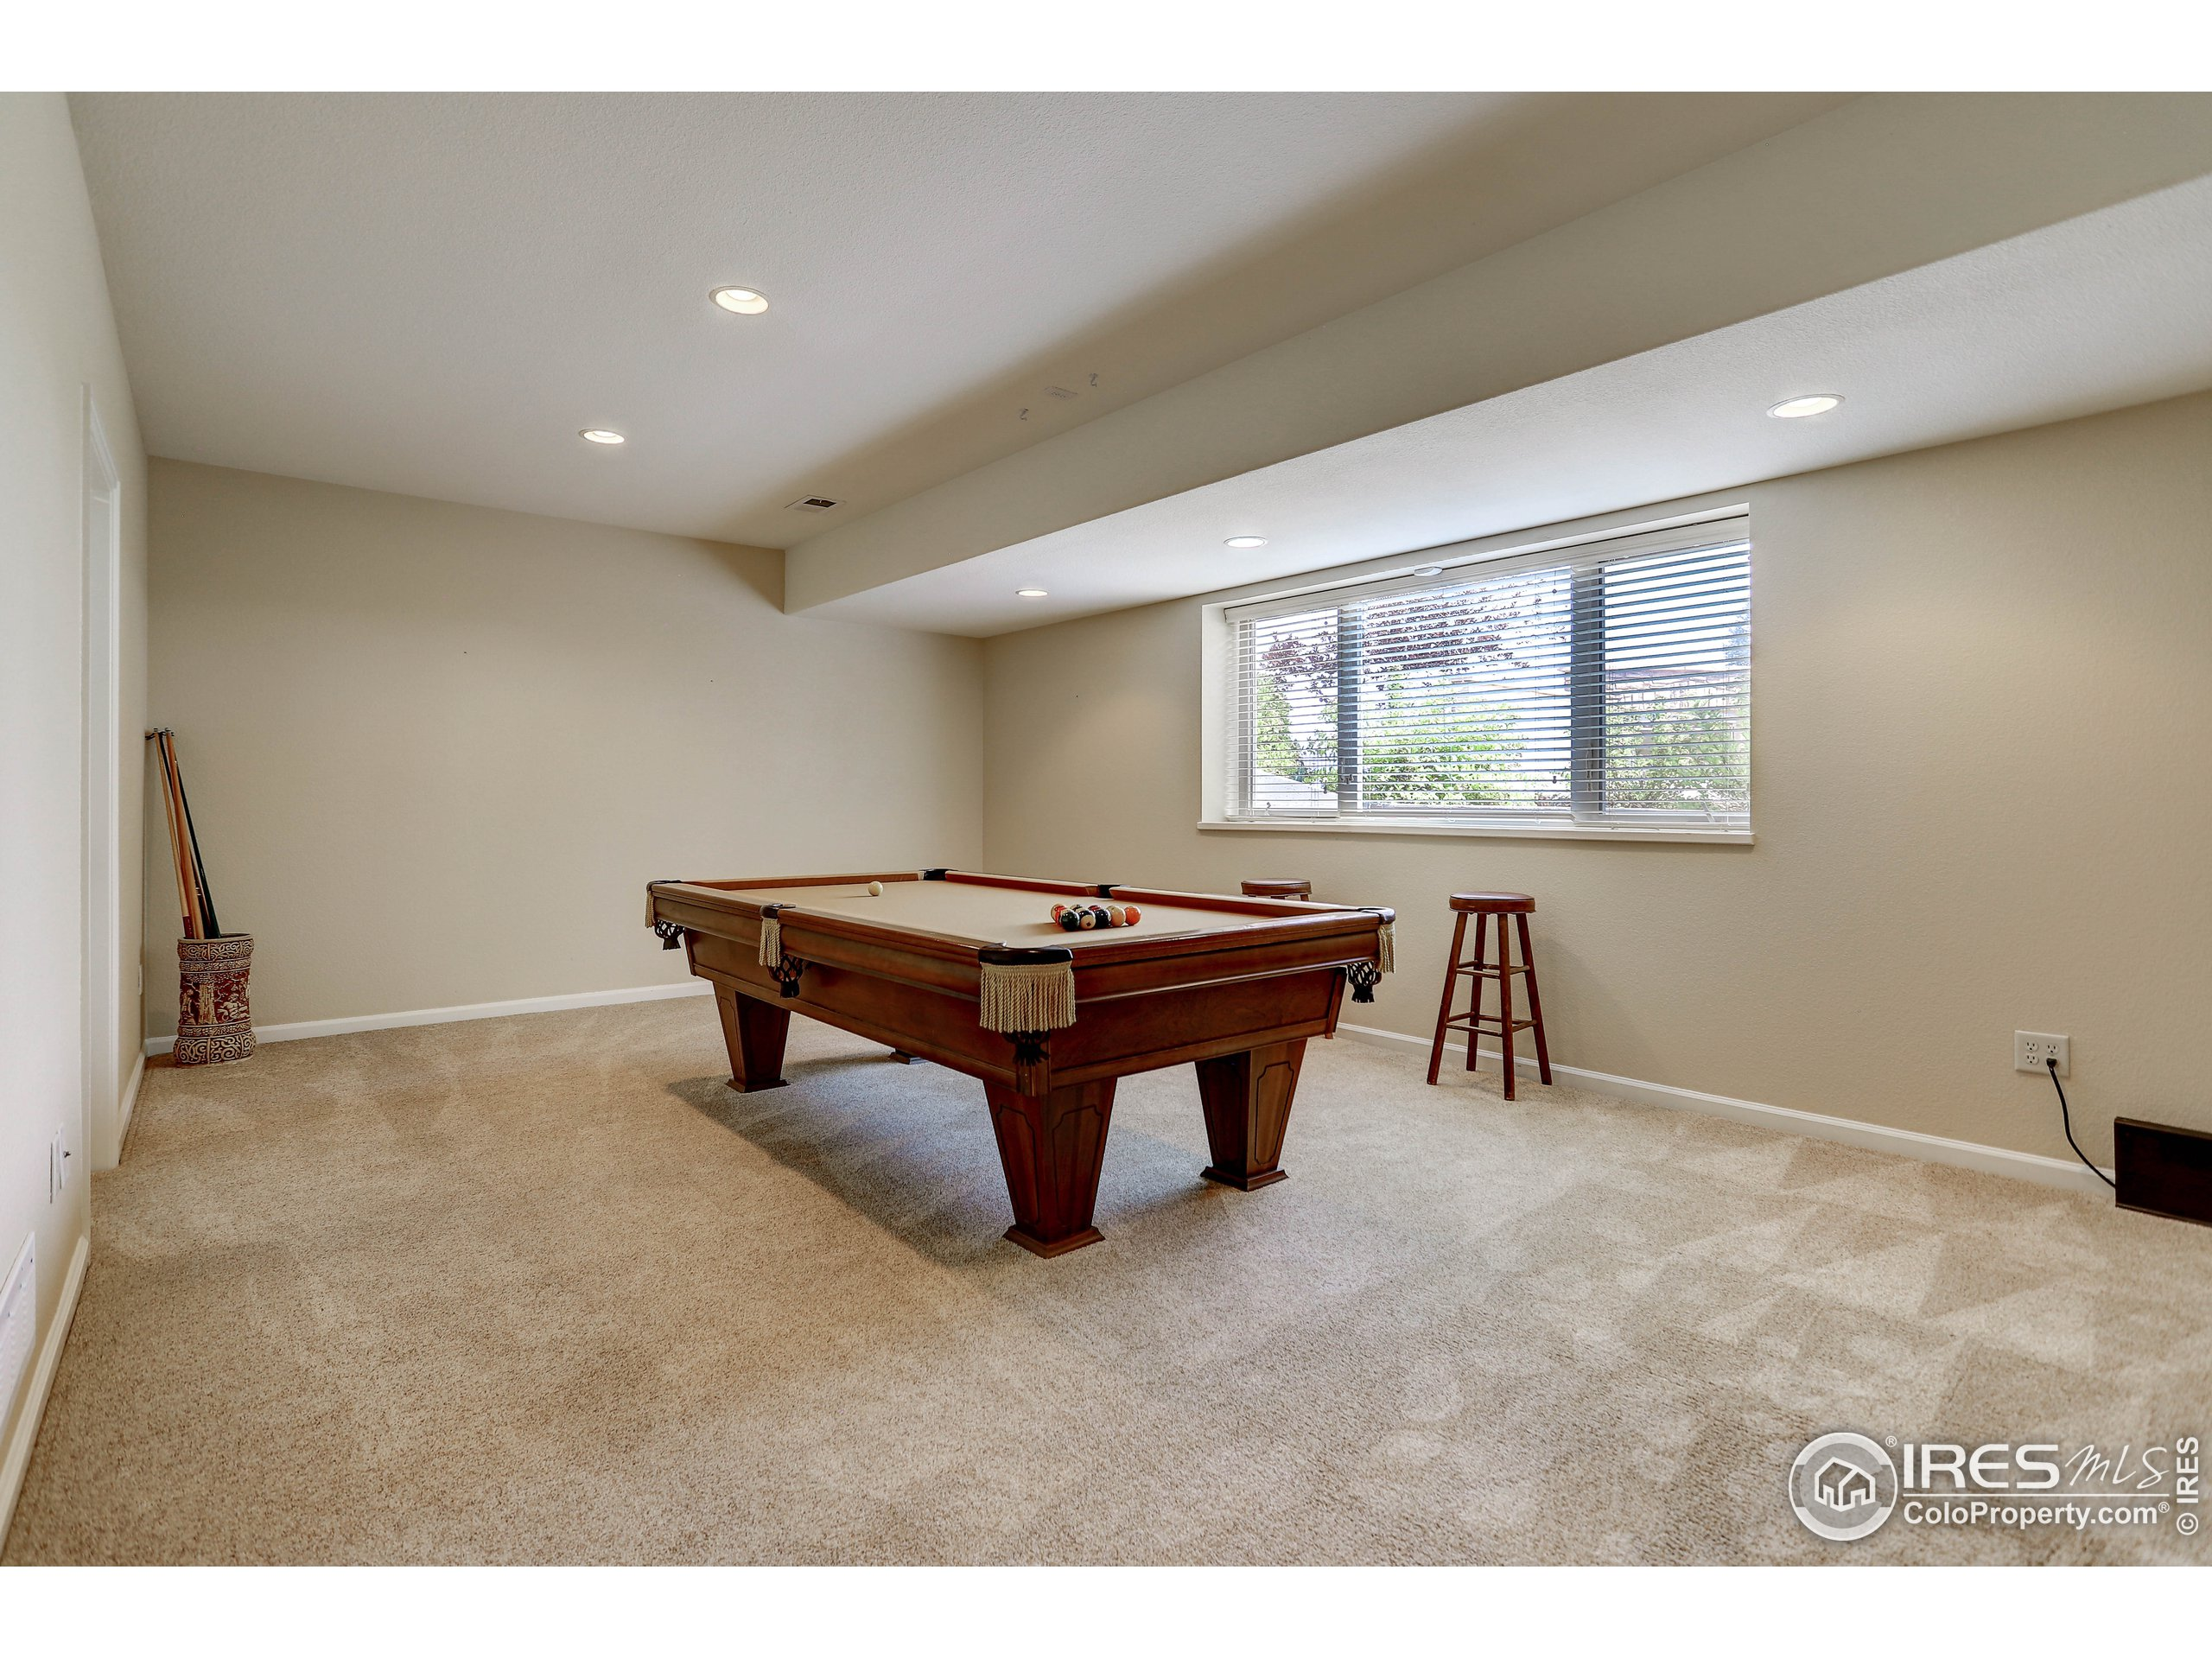 spacious rec room, or potential additional bedroom suite